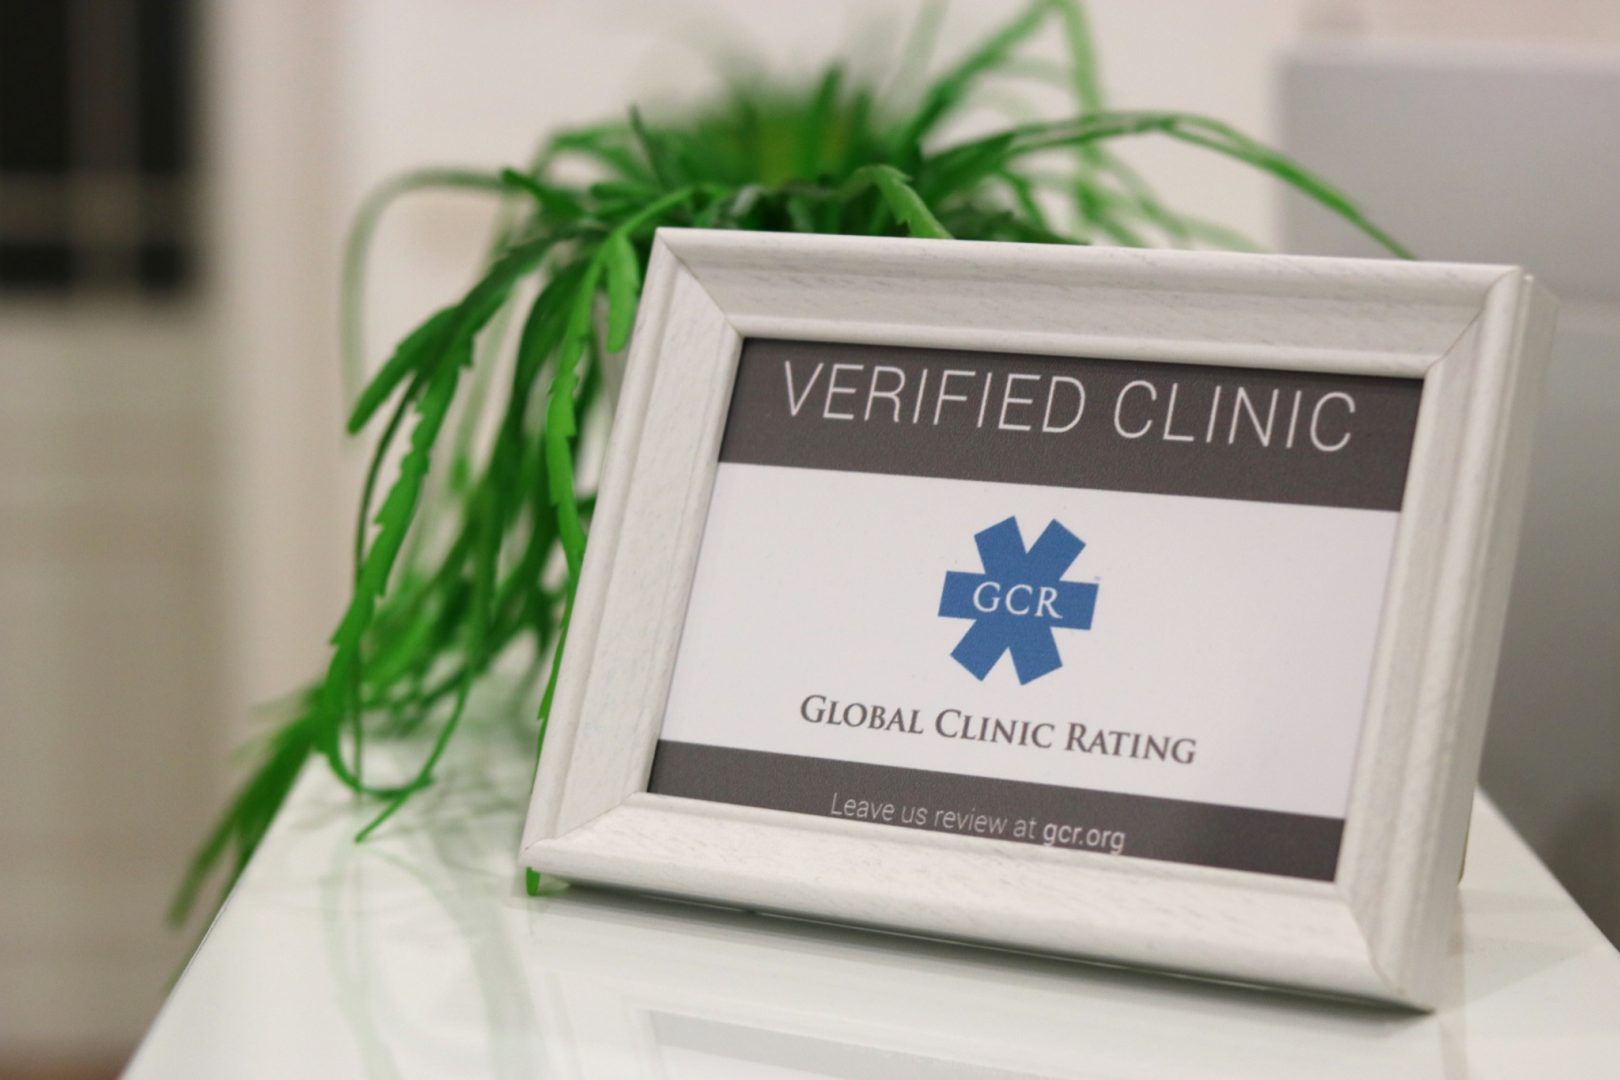 Global Clinic Rating Verified clinic